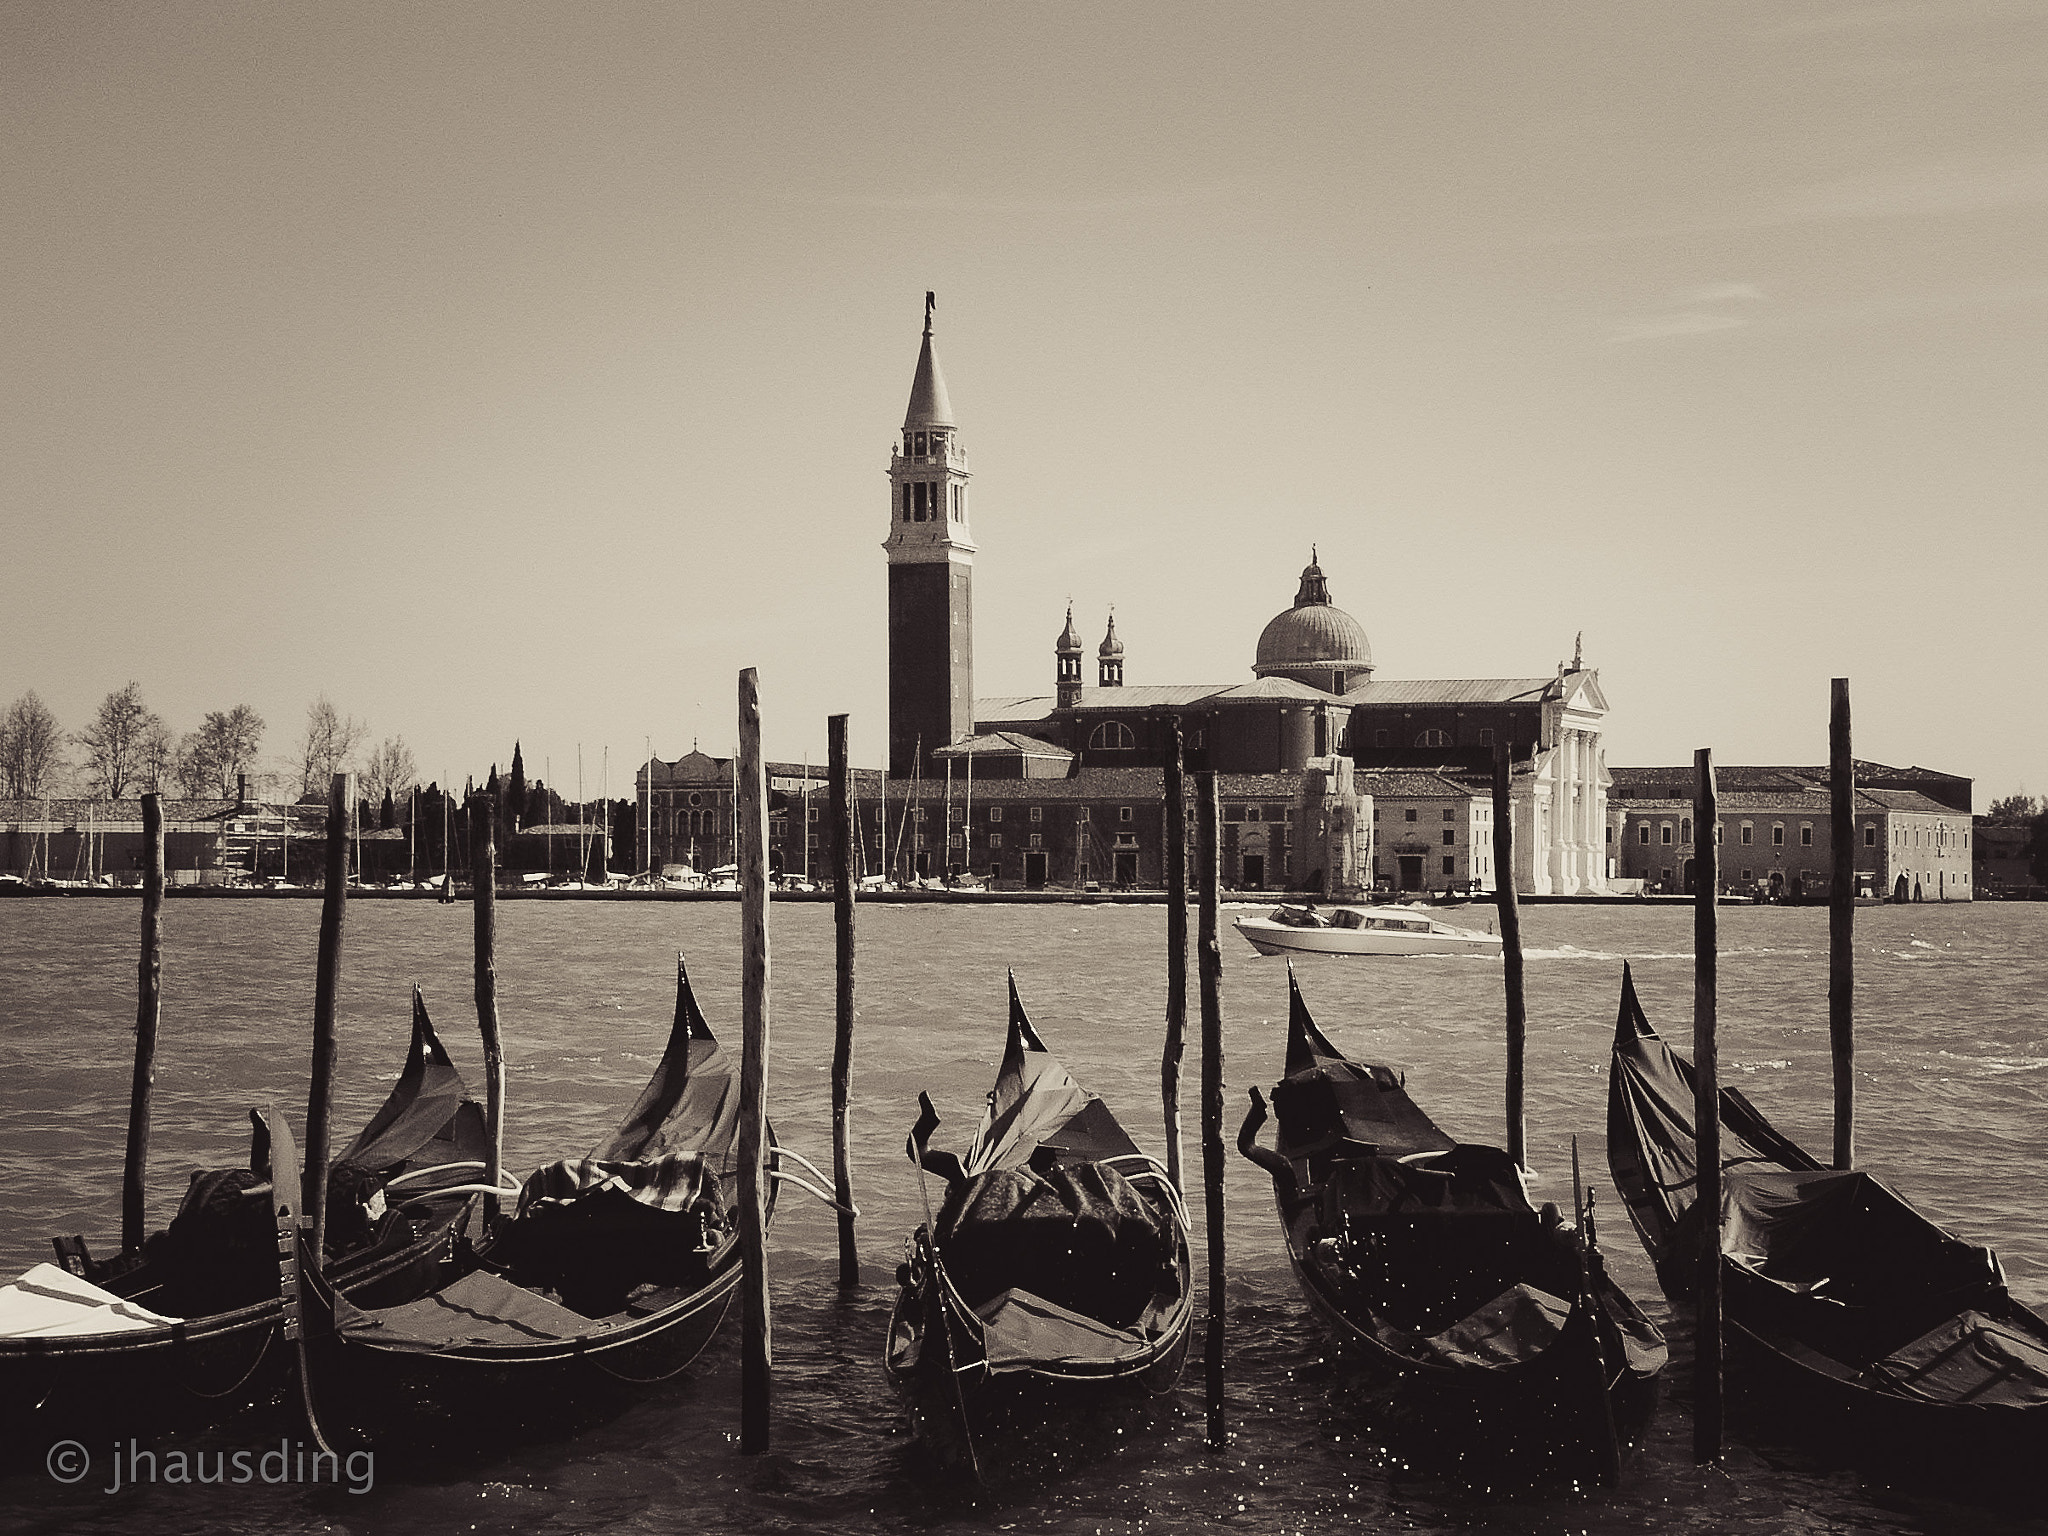 Photograph Venice moment II by Jan Hausding on 500px